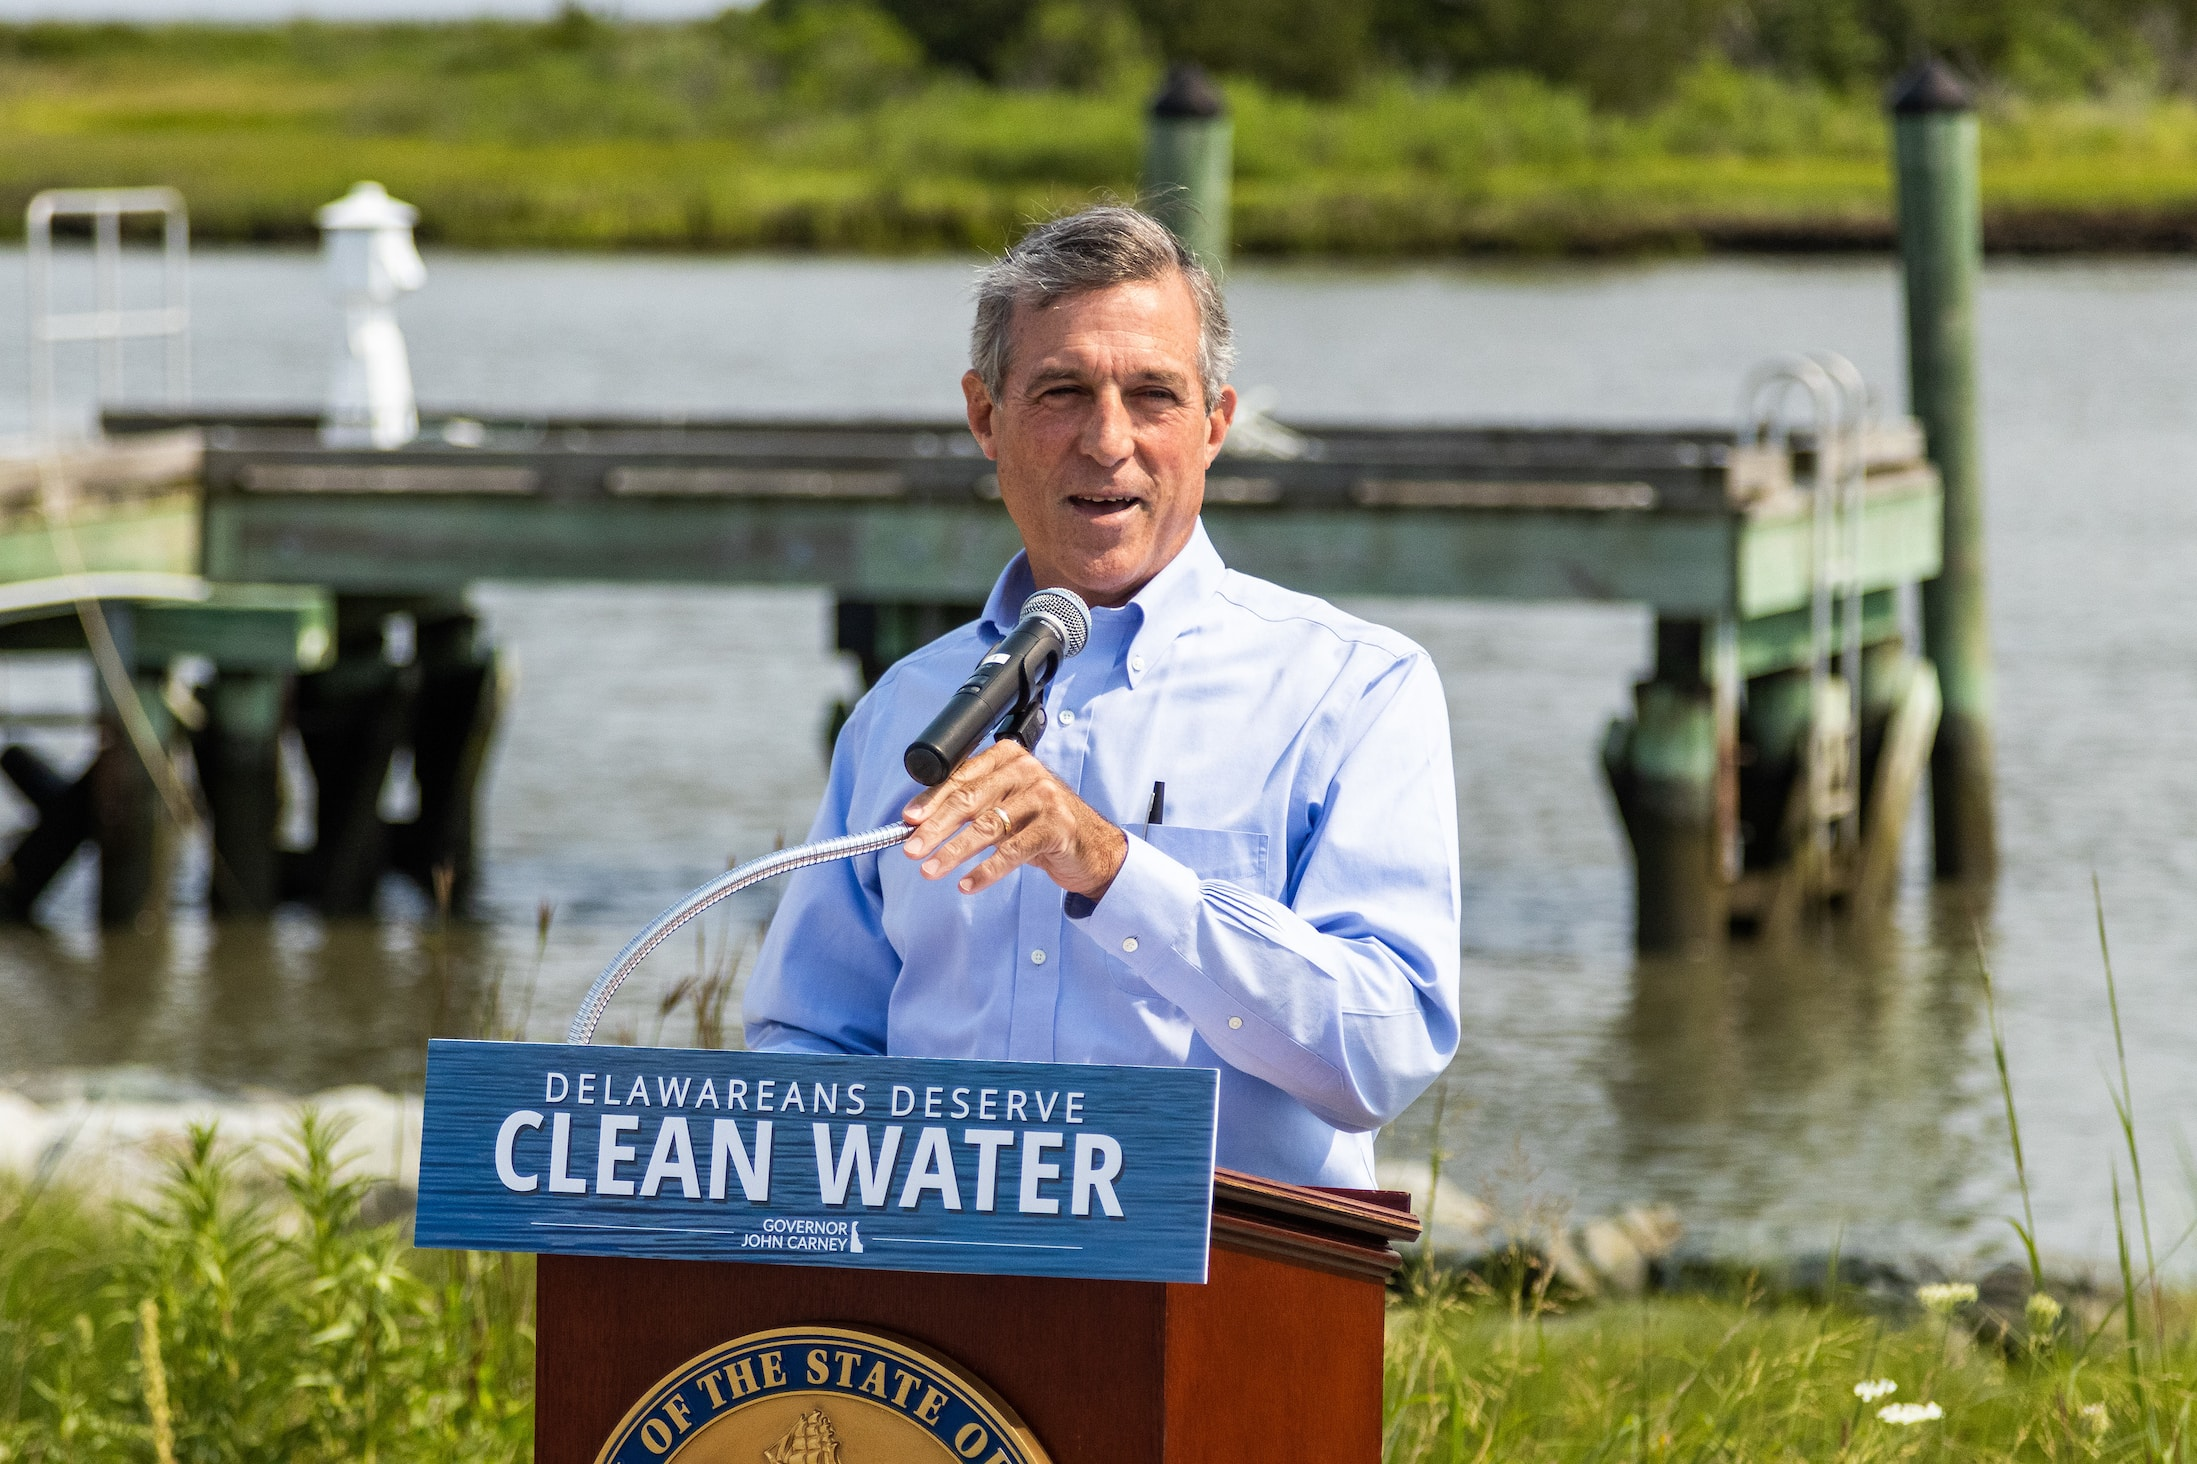 Clean Water for Delaware